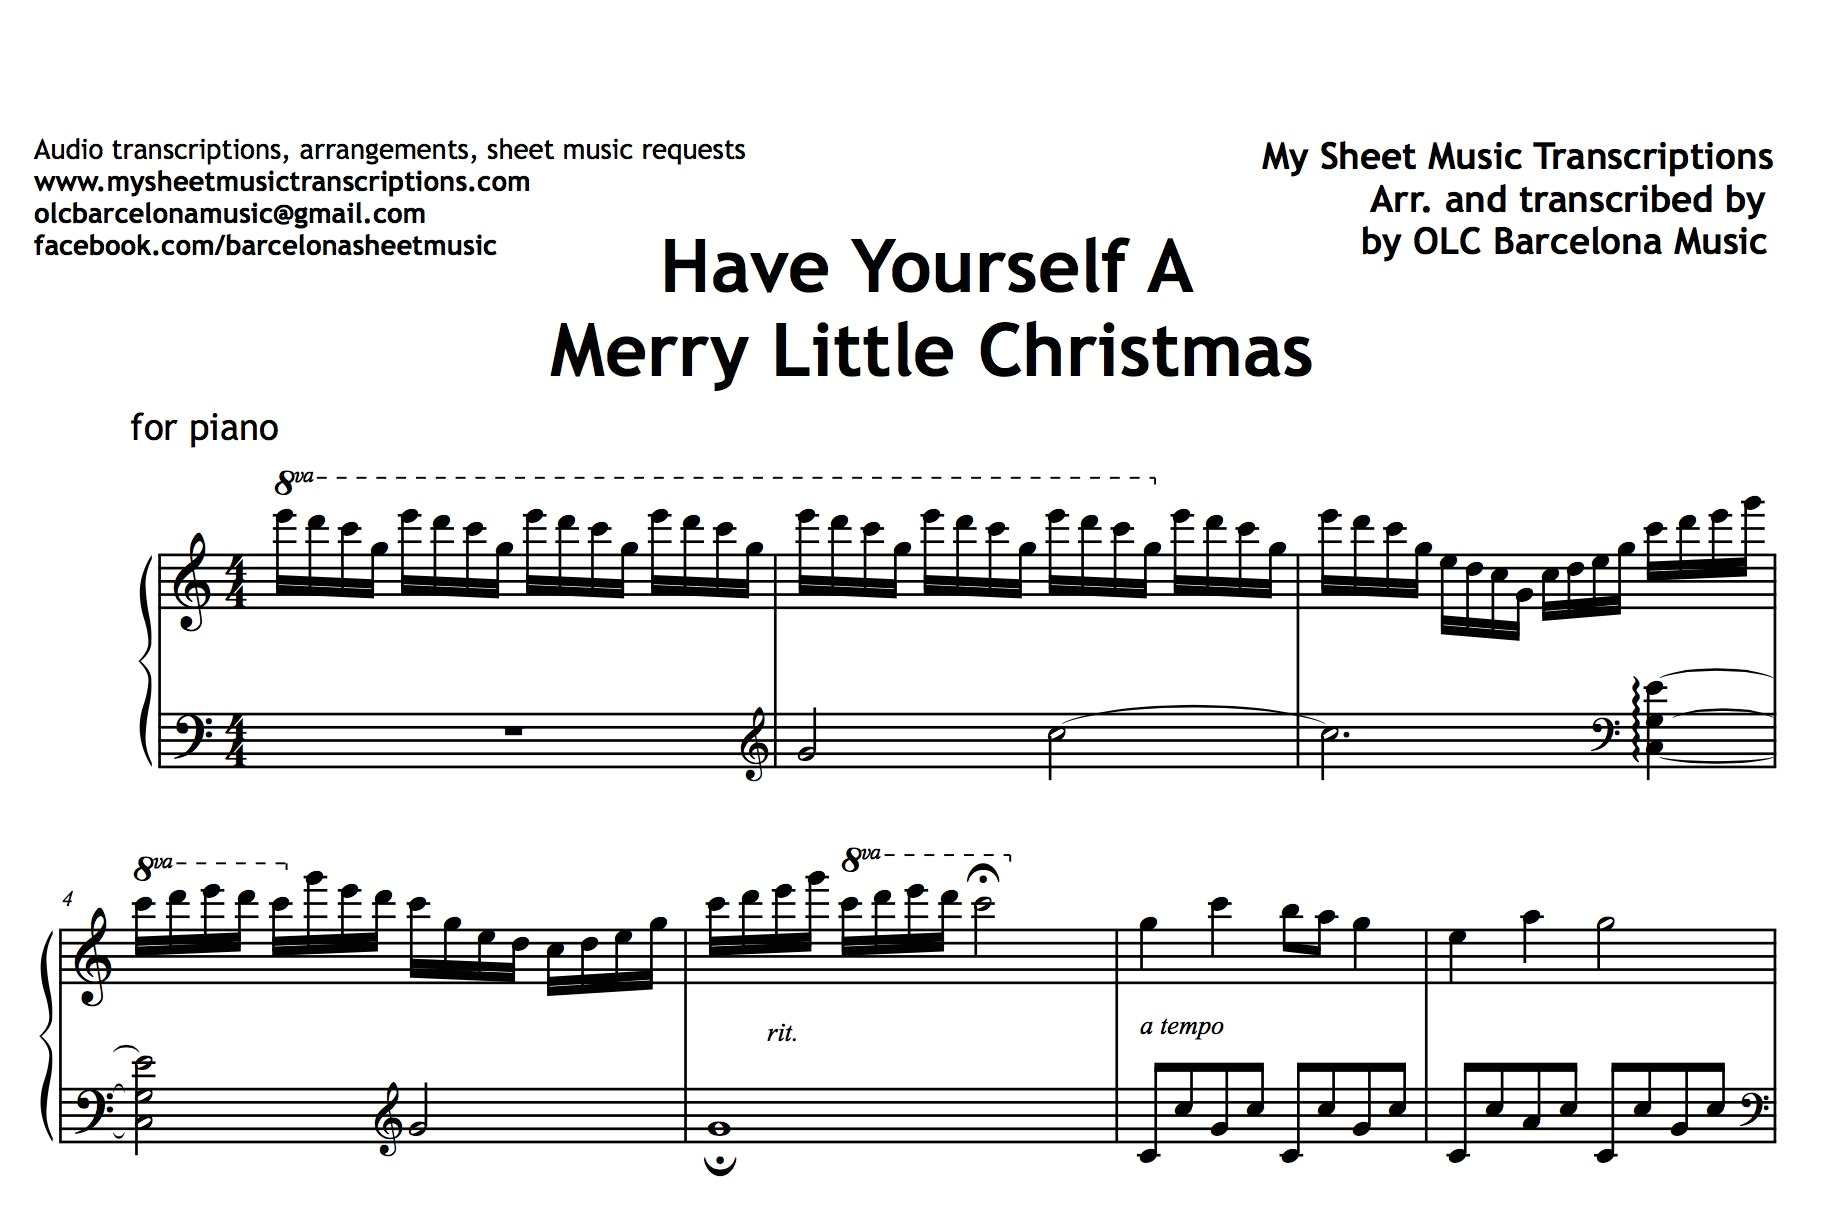 Have Yourself A Merry Little Christmas Sheet Music.Have Yourself A Merry Little Christmas Hugh Martin And Ralph Blane Sheet Music